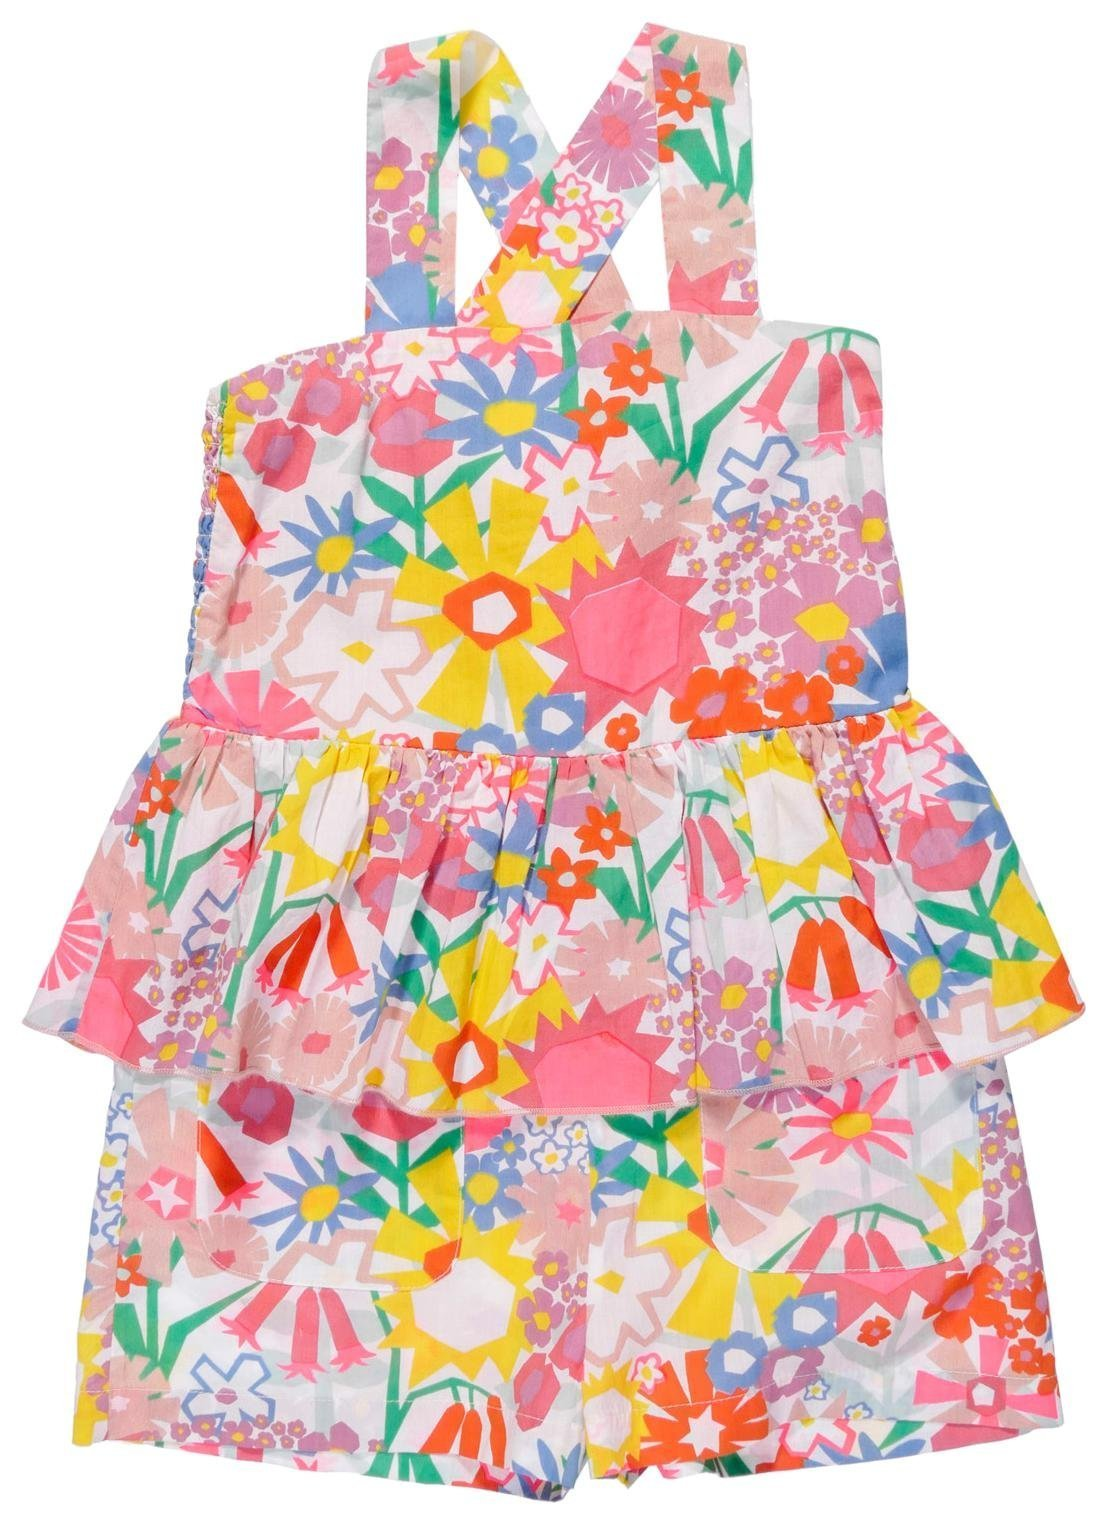 Stella McCartney Kids Girls' Amie Floral Peplum Romper, Multi, 5